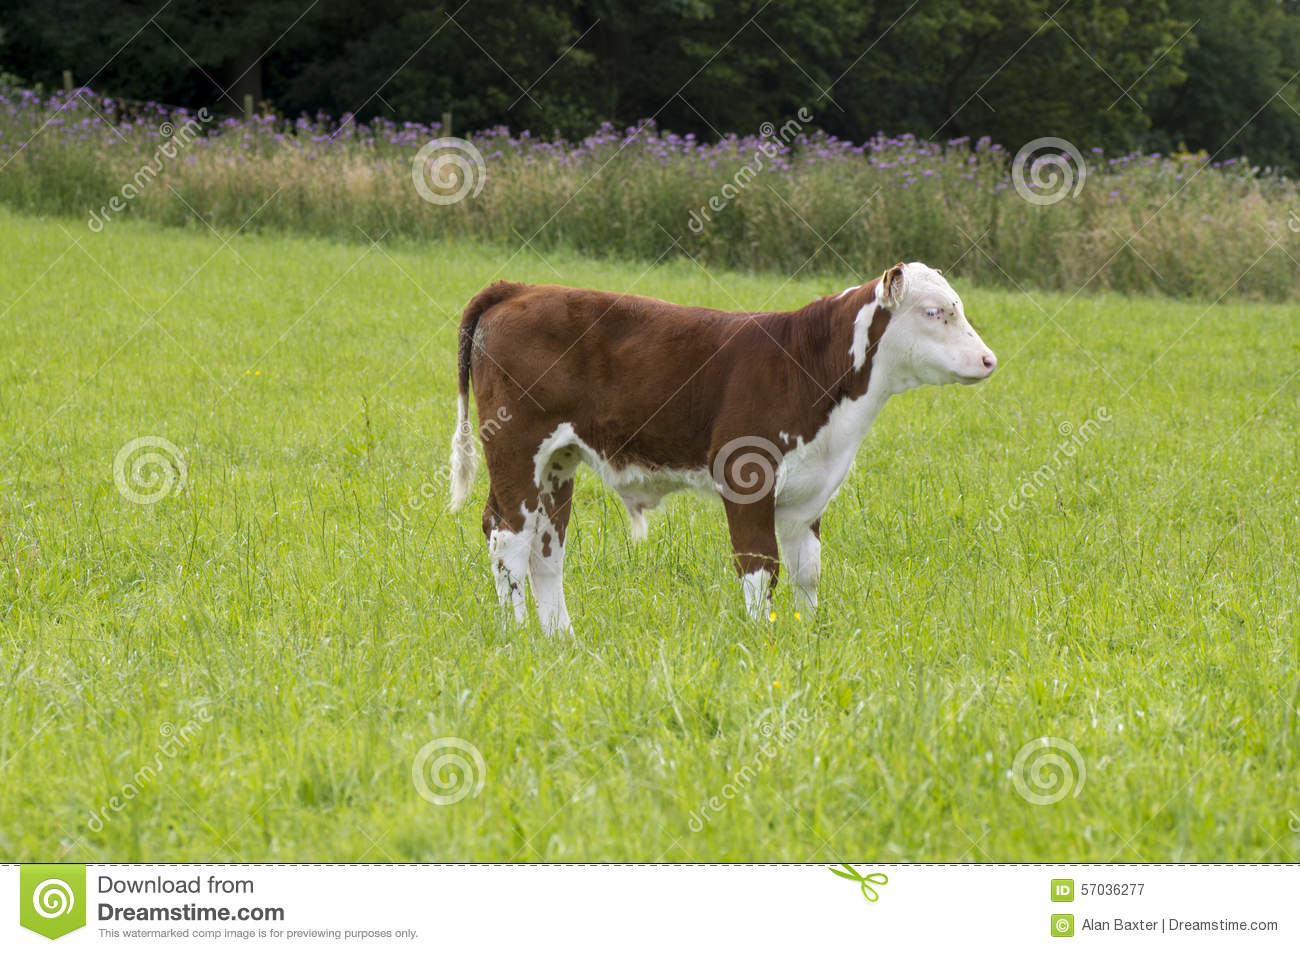 Who is suitable for a male calf dog for marriage 72